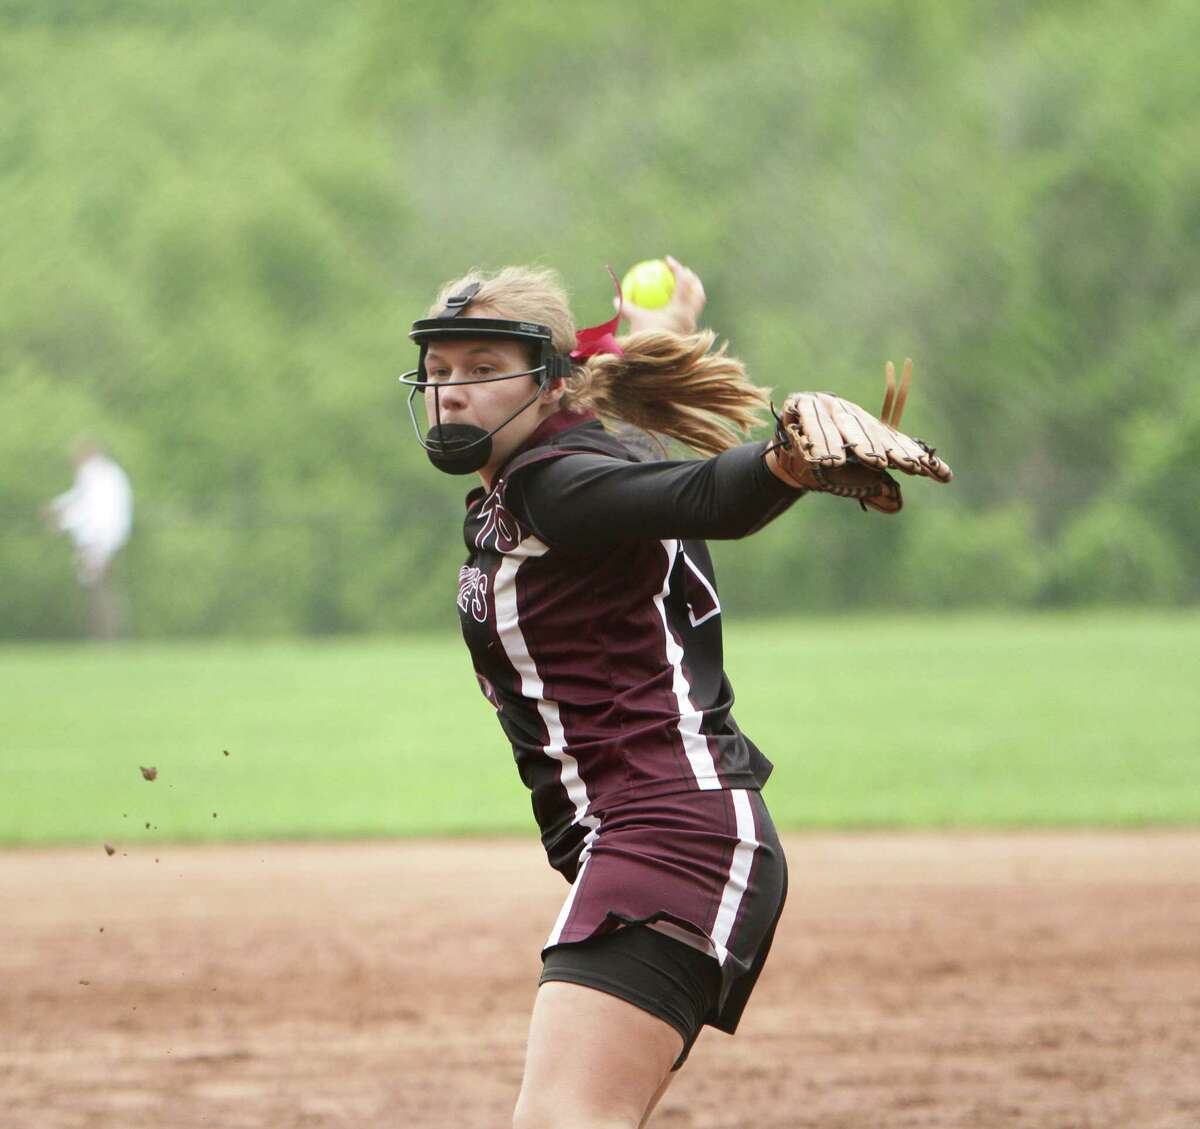 Marissa Ruschil (senior), struck out 11 without allowing a hit and collected three RBIs in St. Luke's 13-0 win.